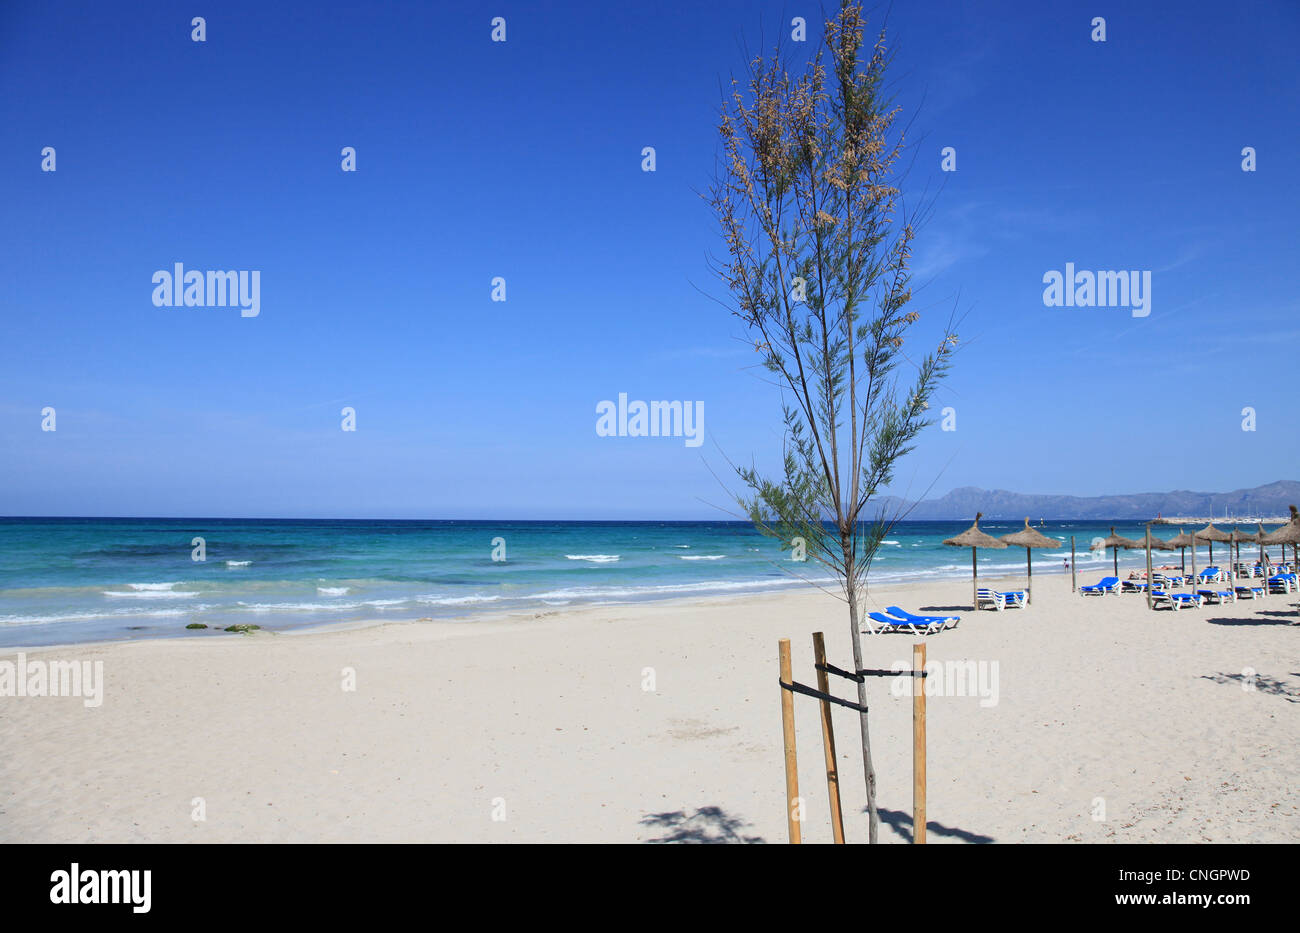 The wide and sandy beach at C'an Picafort on the Balearic Island of Mallorca, Spain - Stock Image